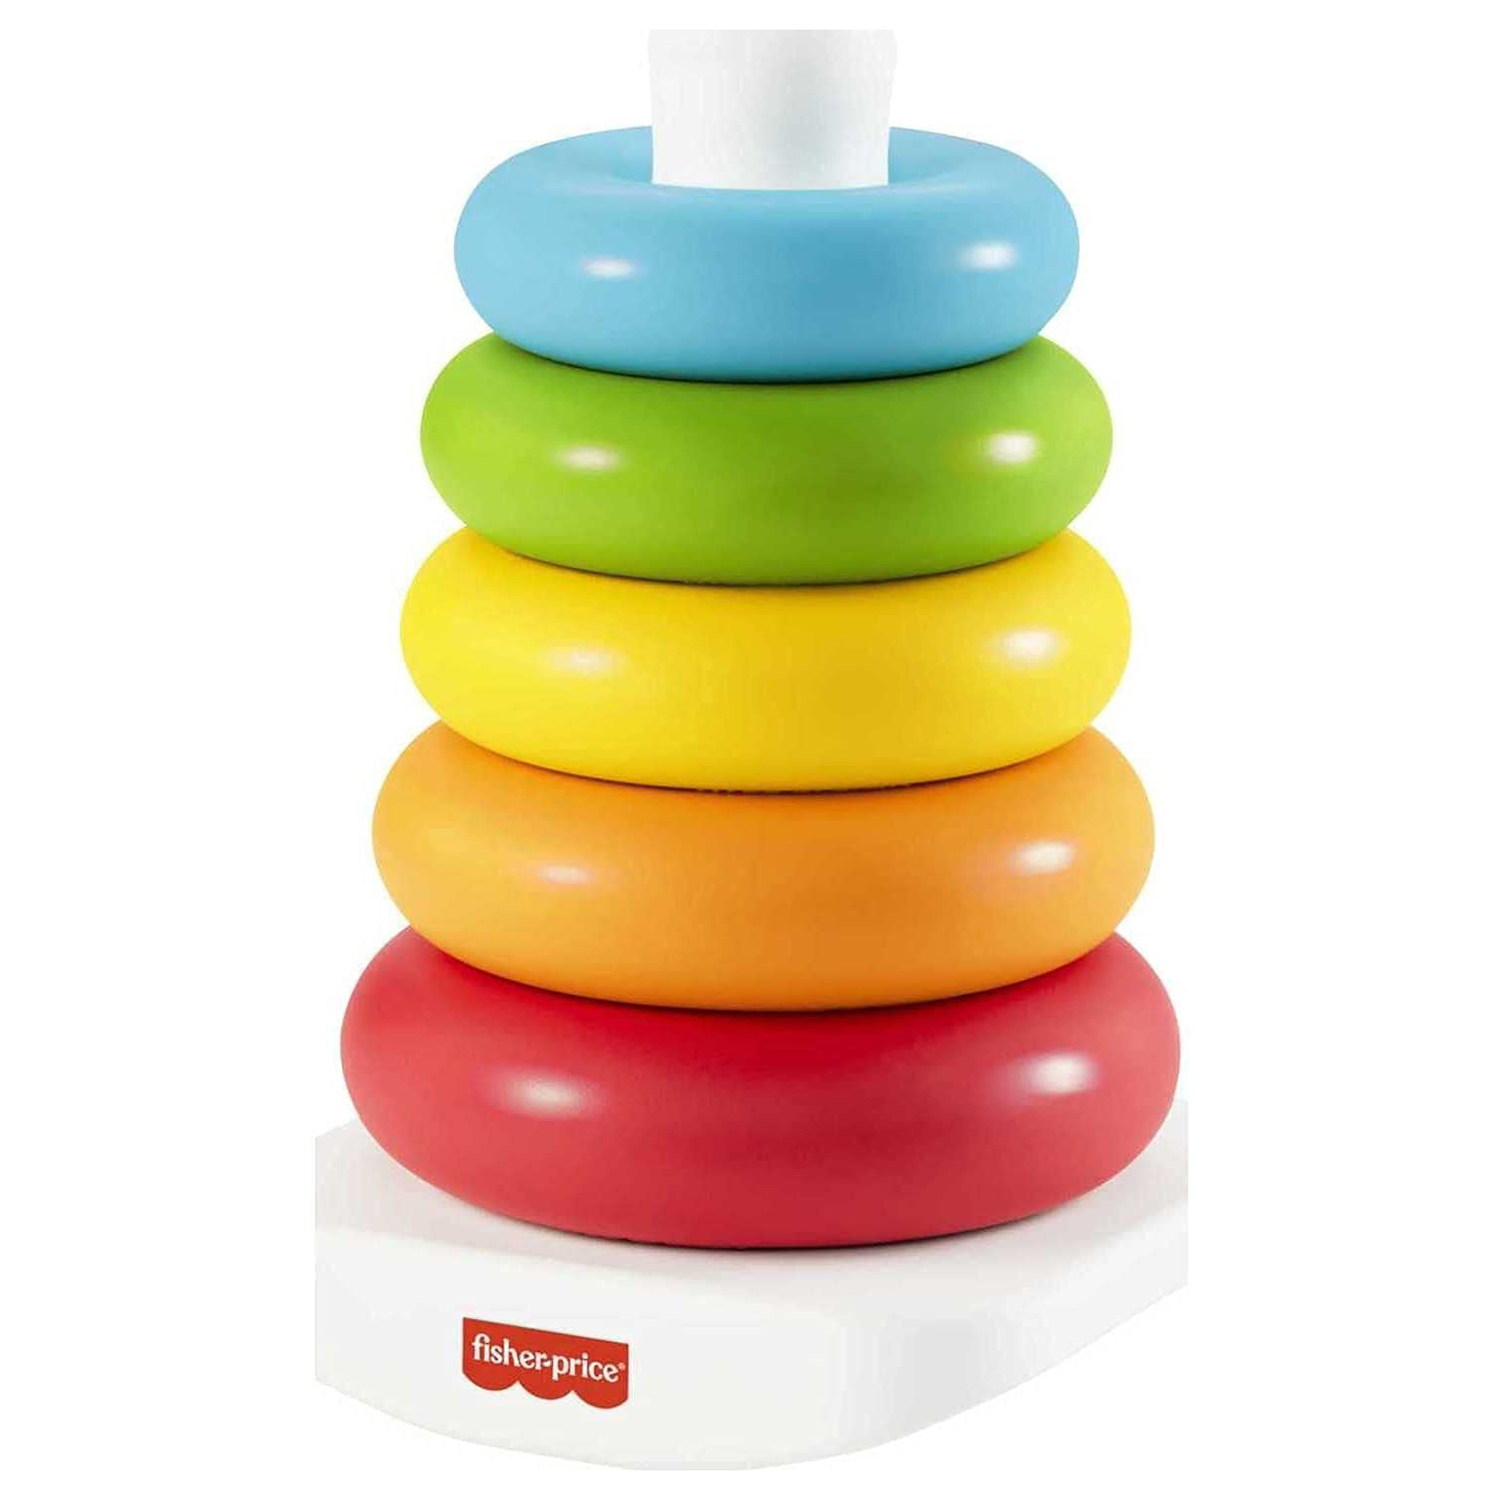 Best Budget Baby Toy: Fisher-Price Rock-a-Stack Classic